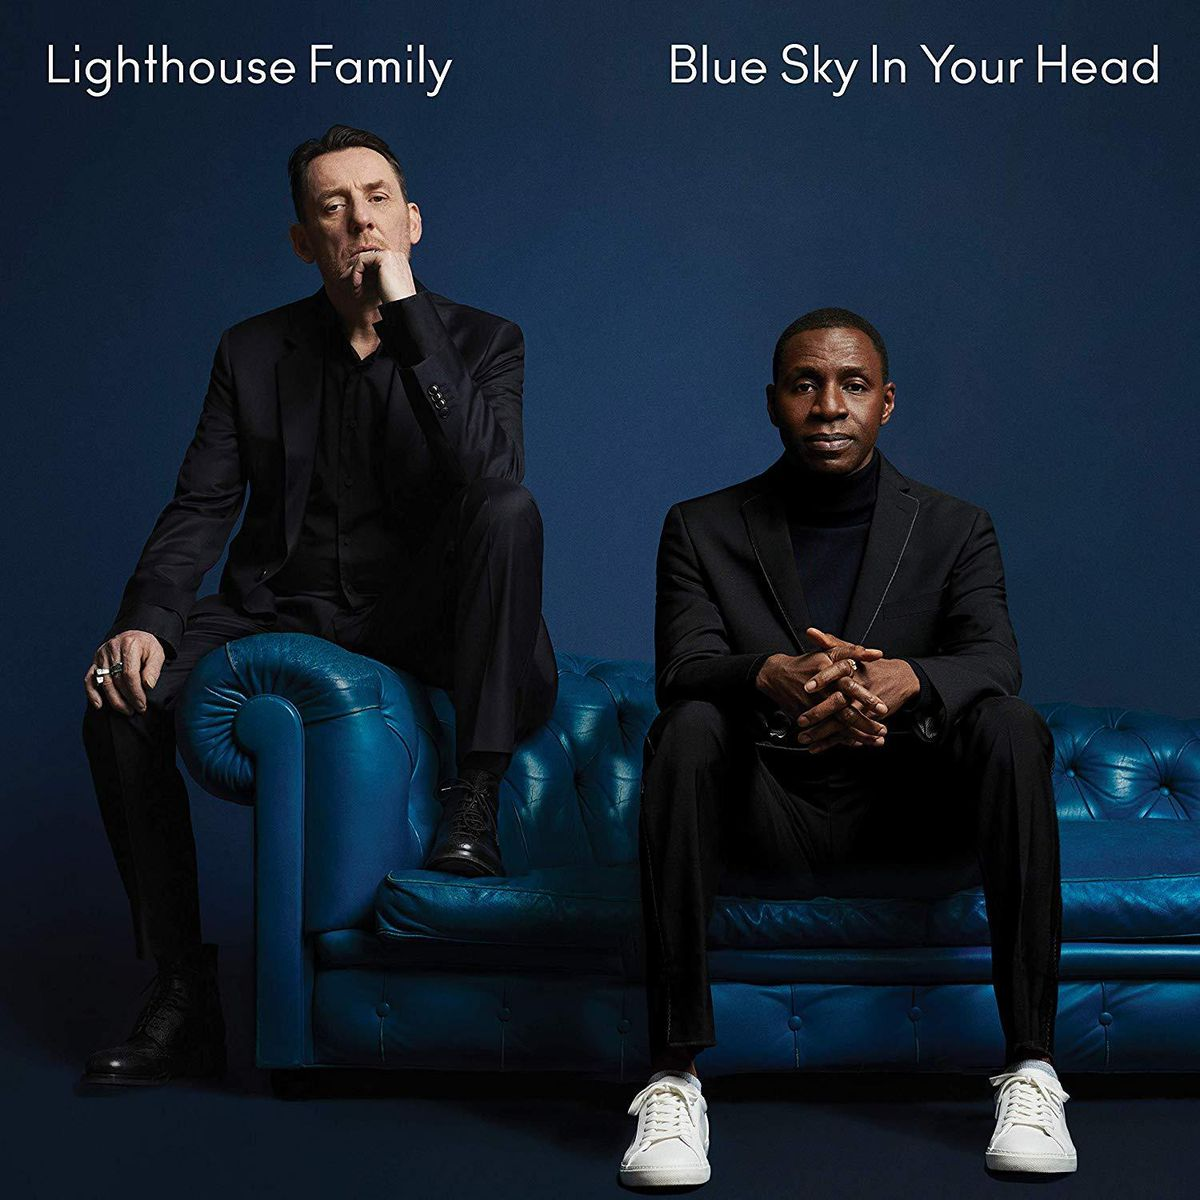 Lighthouse Family are back with their first record in 18 years